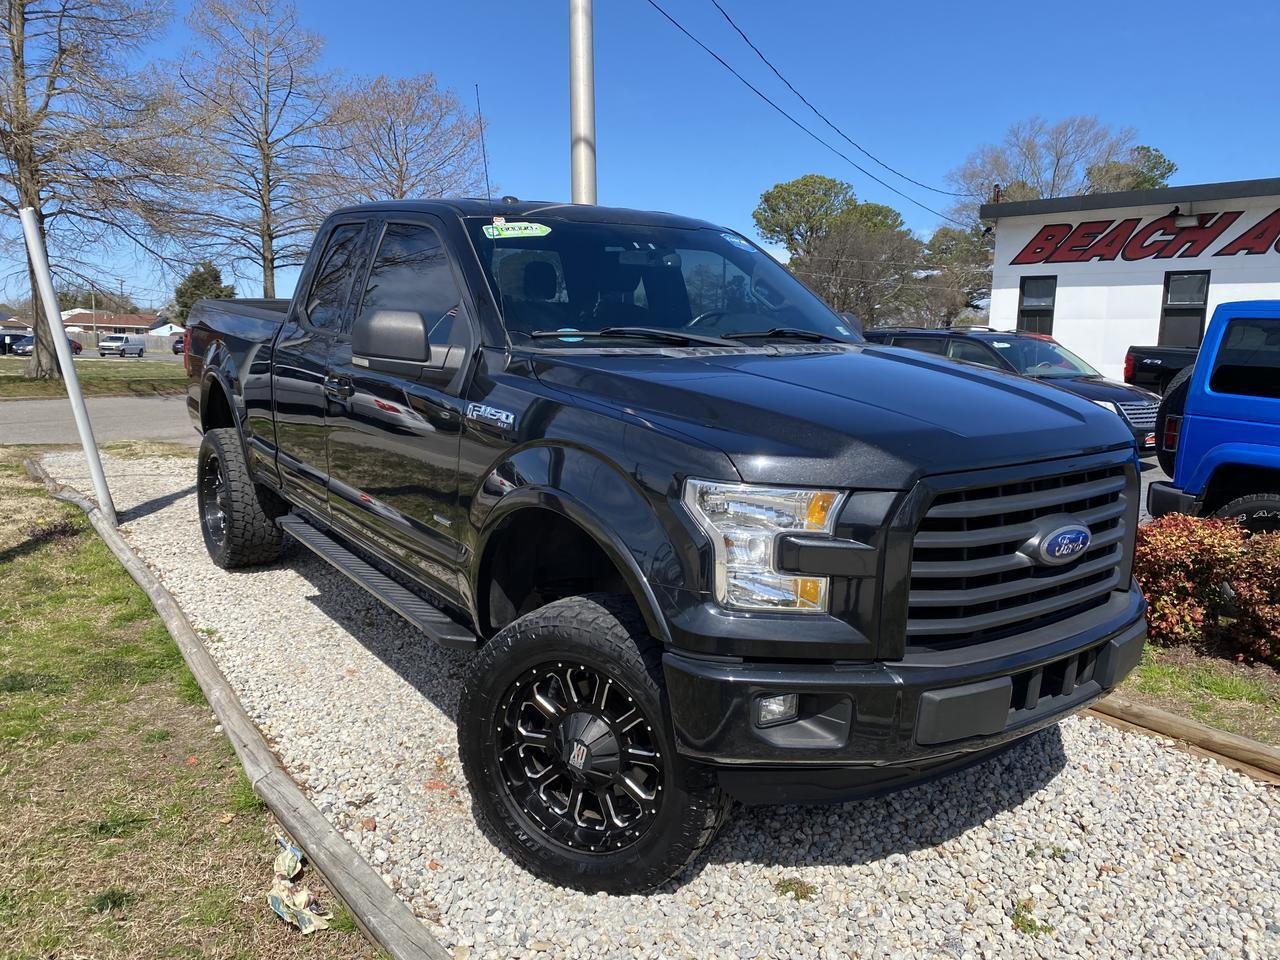 2015 FORD F-150 XLT SUPERCAB, WARRANTY, BACKUP CAM, PARKING SENSORS, HEATED SEATS, AUX/USB PORT, CLEAN CARFAX! Norfolk VA